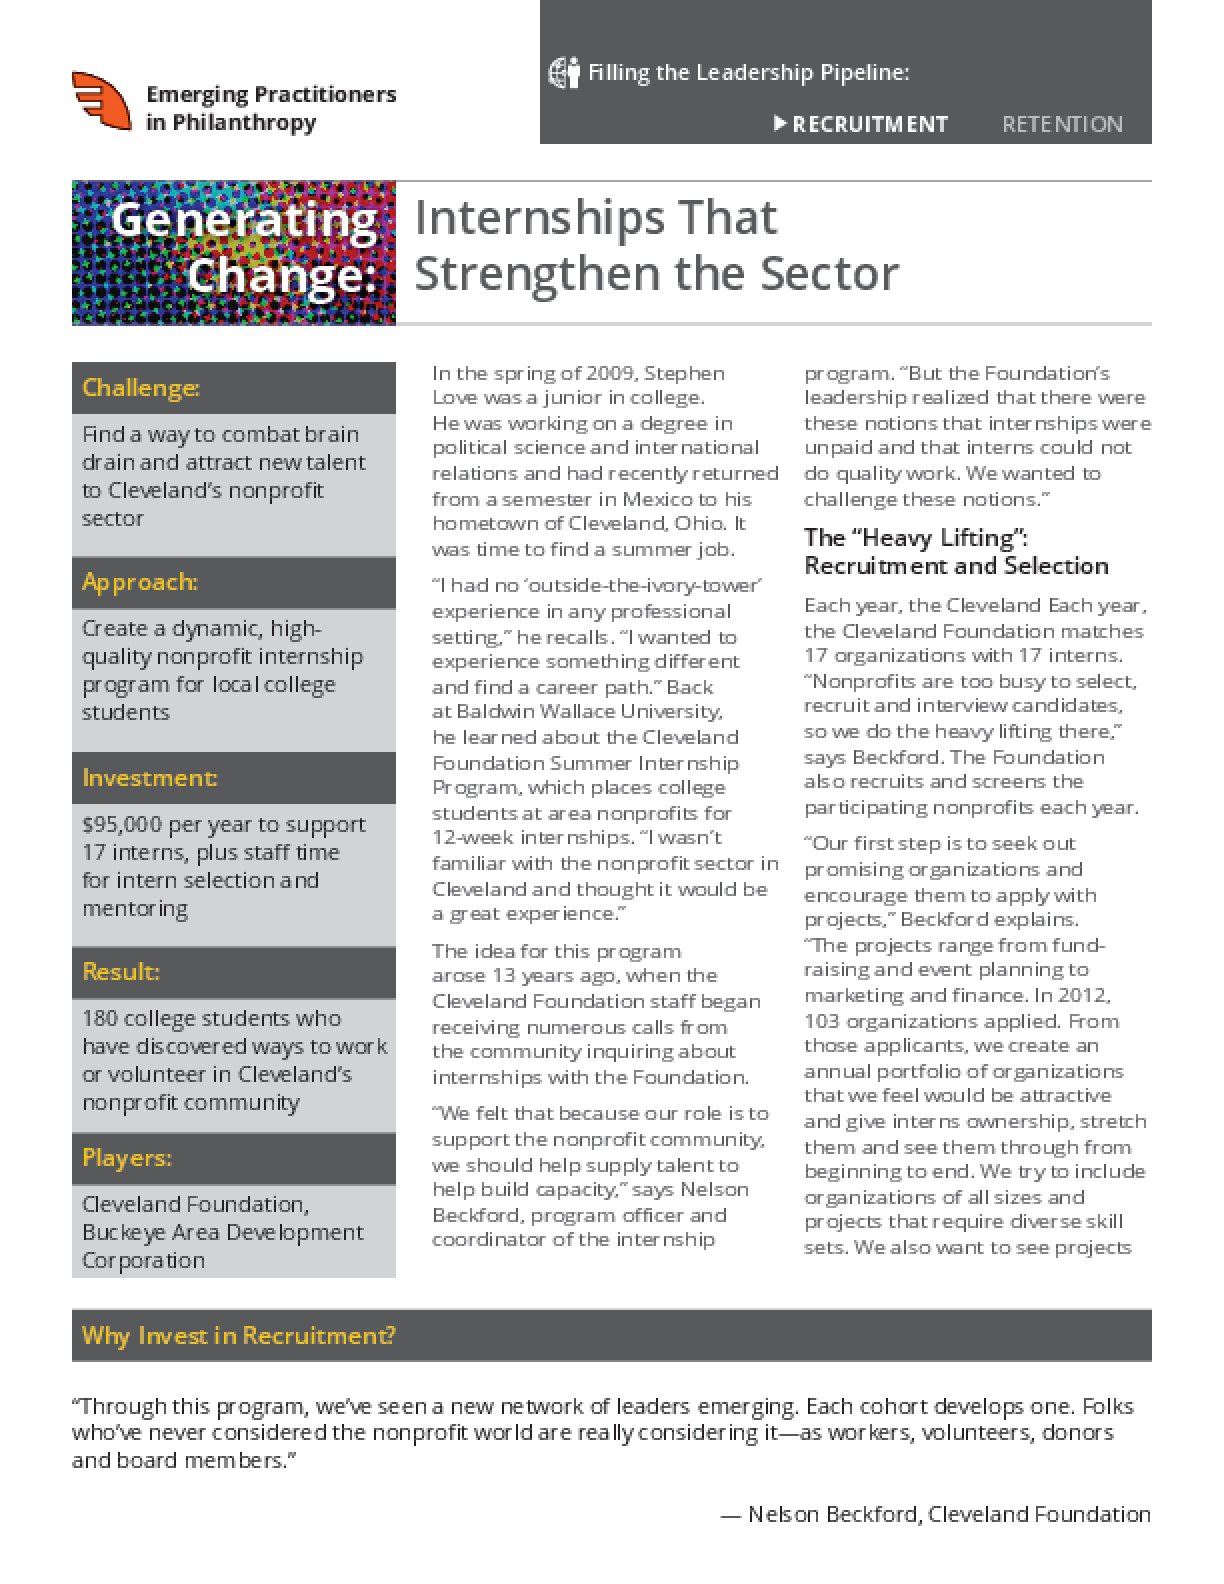 Generating Change: Internships that Strengthen the Sector